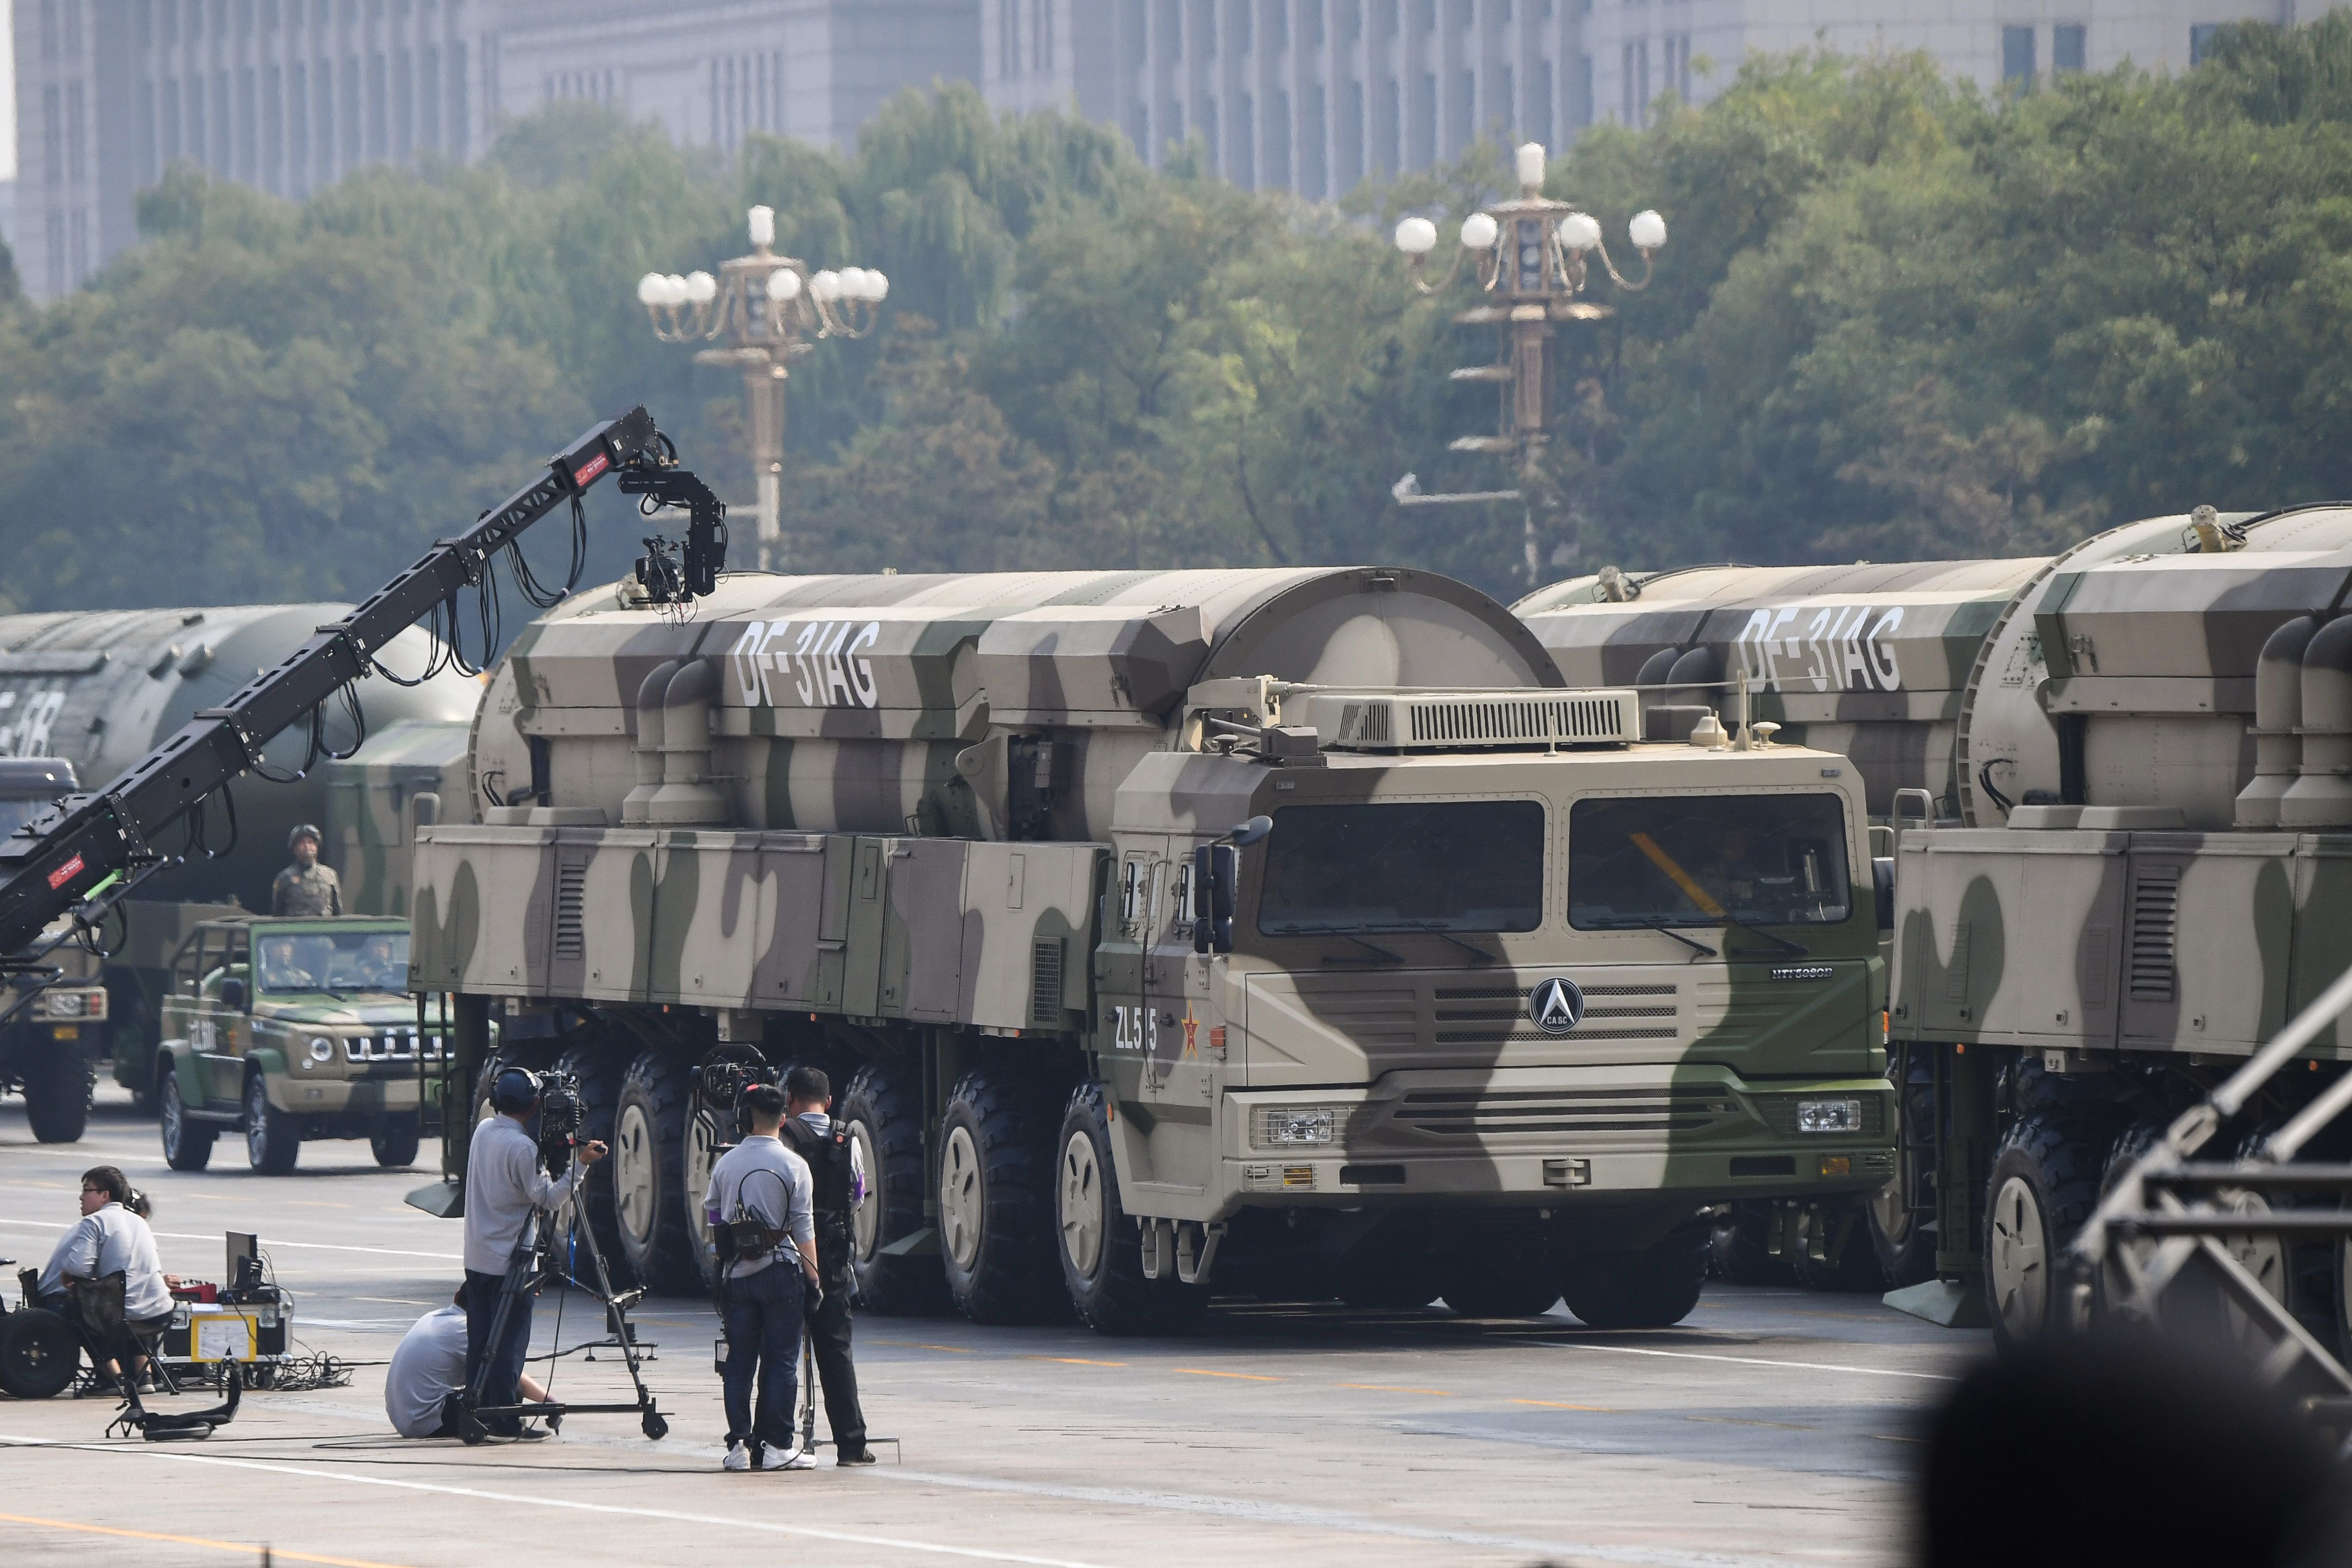 Military vehicles carry DF-31AG intercontinental ballistic missiles during a military parade at Tiananmen Square in Beijing. (Greg Baker/AFP via Getty Images)